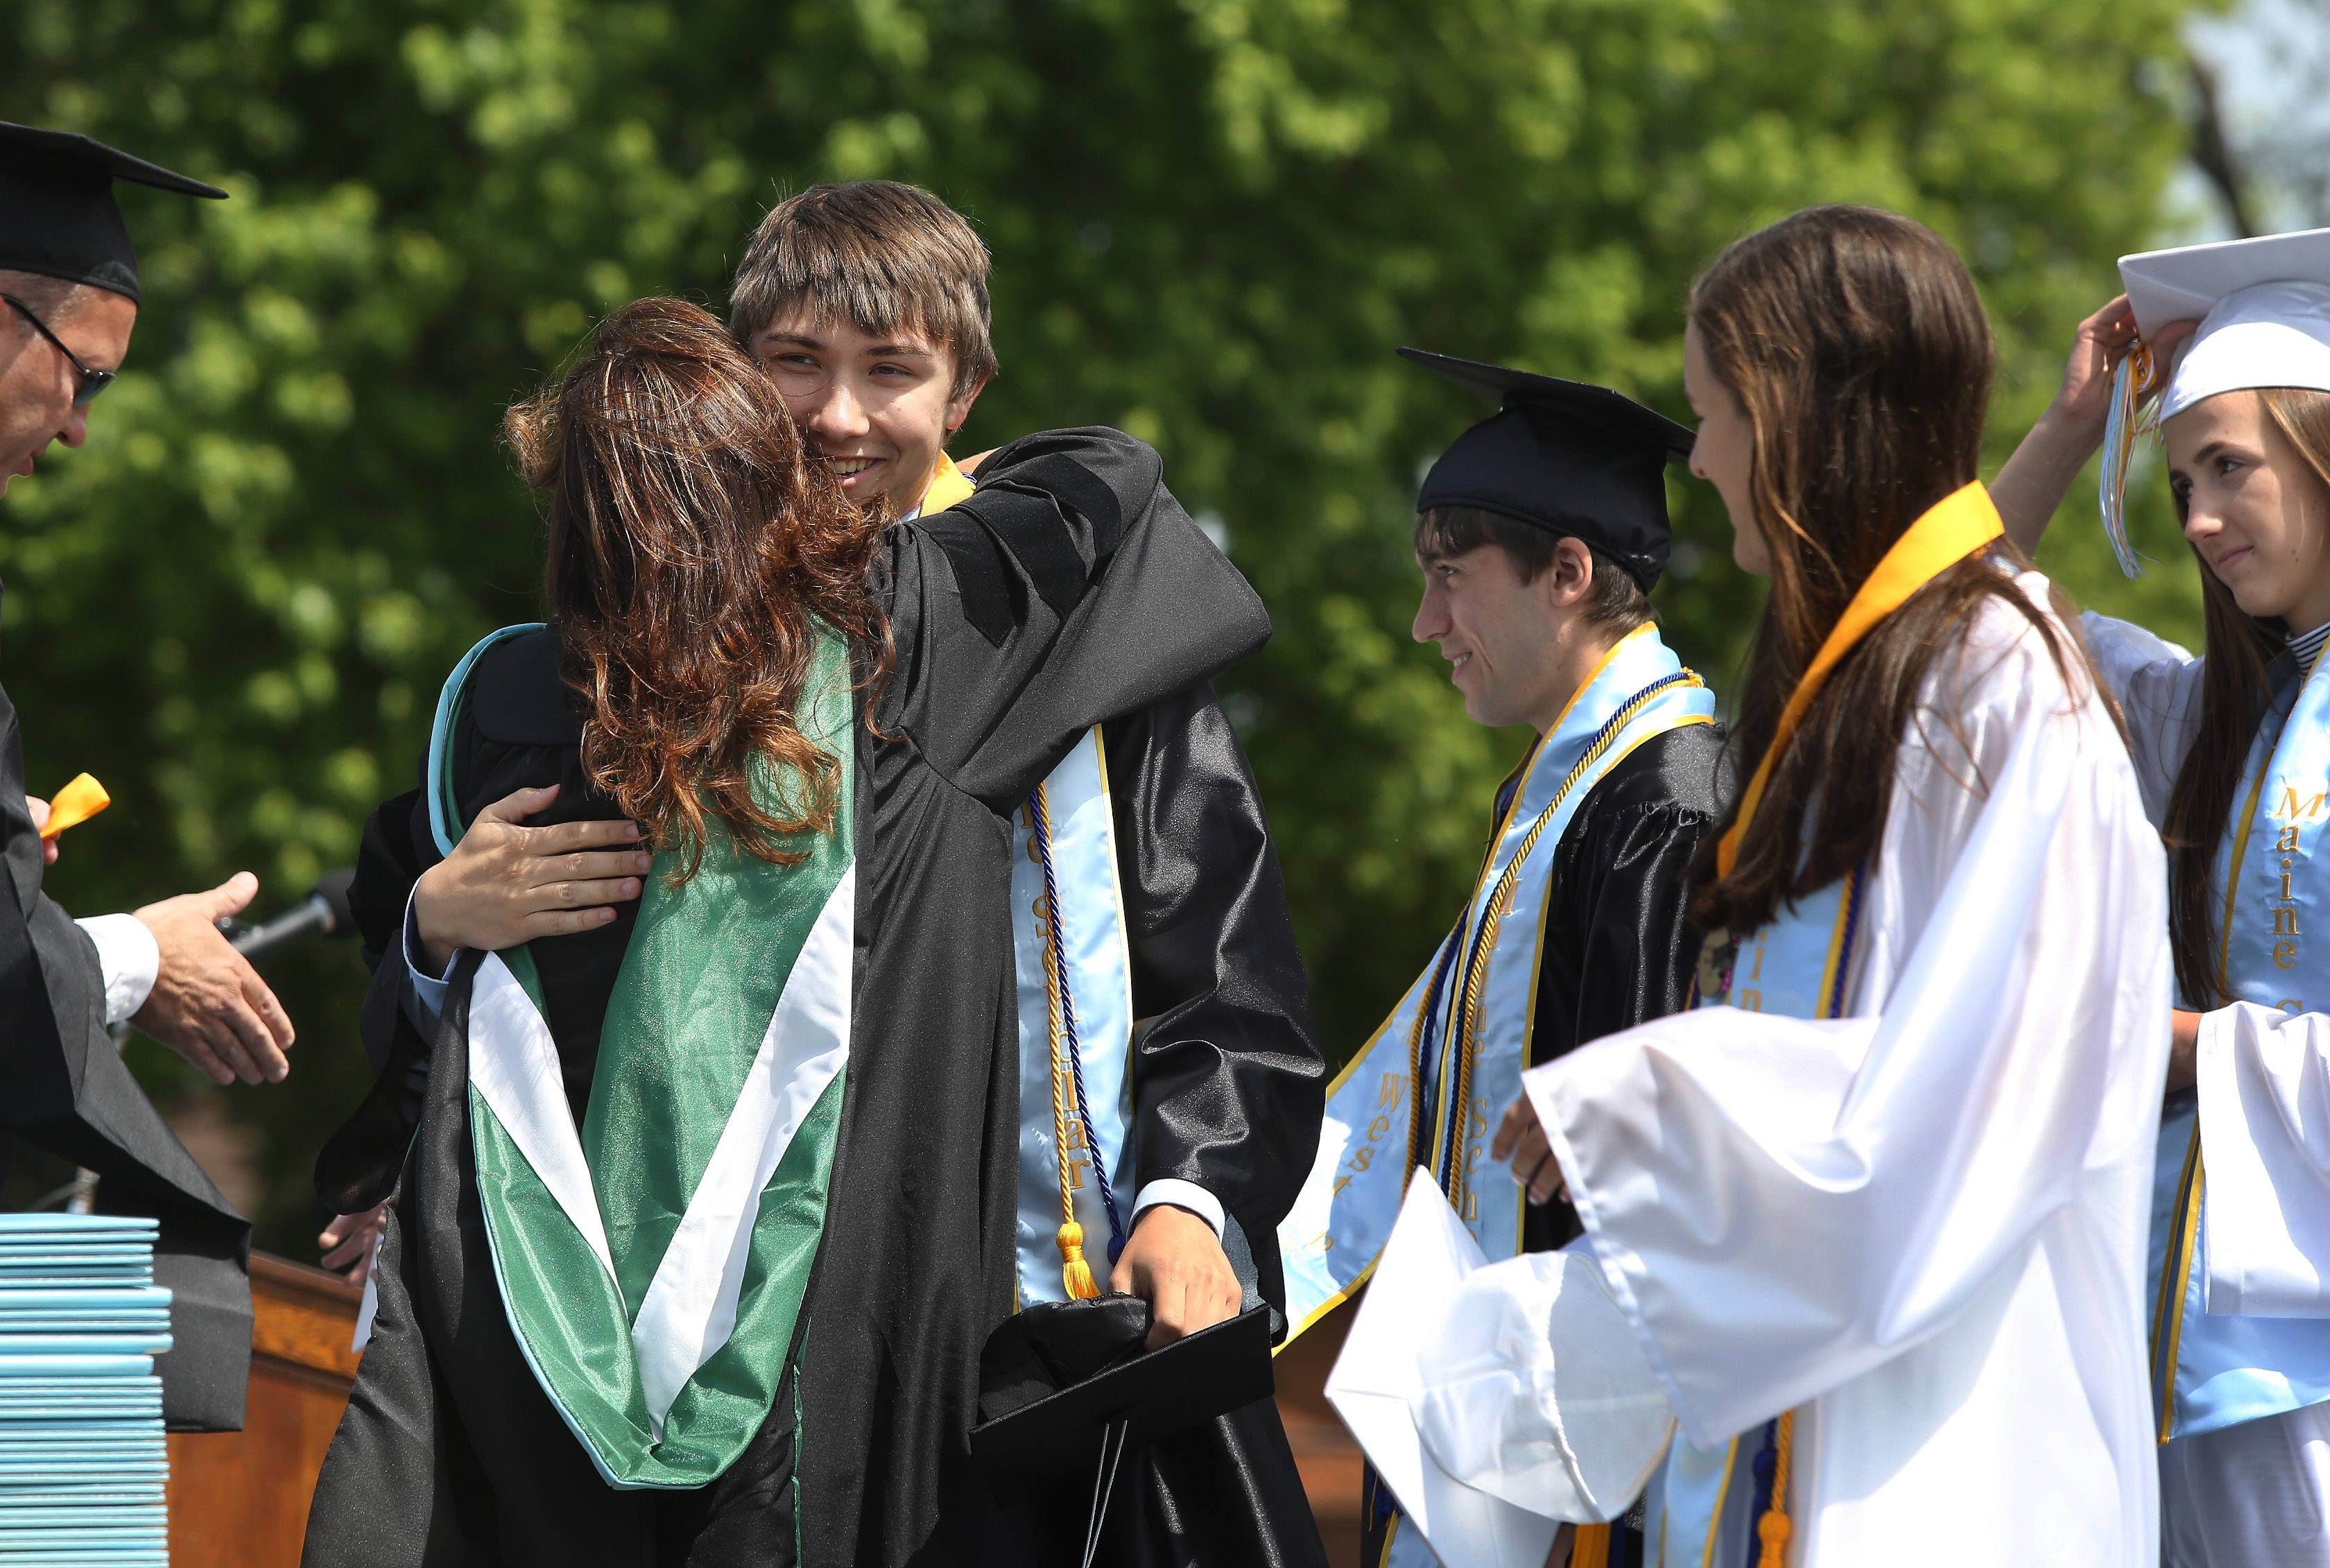 Maine Scholar Eric Etzwiler is hugged by Principal Audrey Haugan as the top 1% were honored during the Maine West High School graduation on Sunday in Des Plaines. Over 500 seniors received their diplomas in the outdoor commencement ceremony.